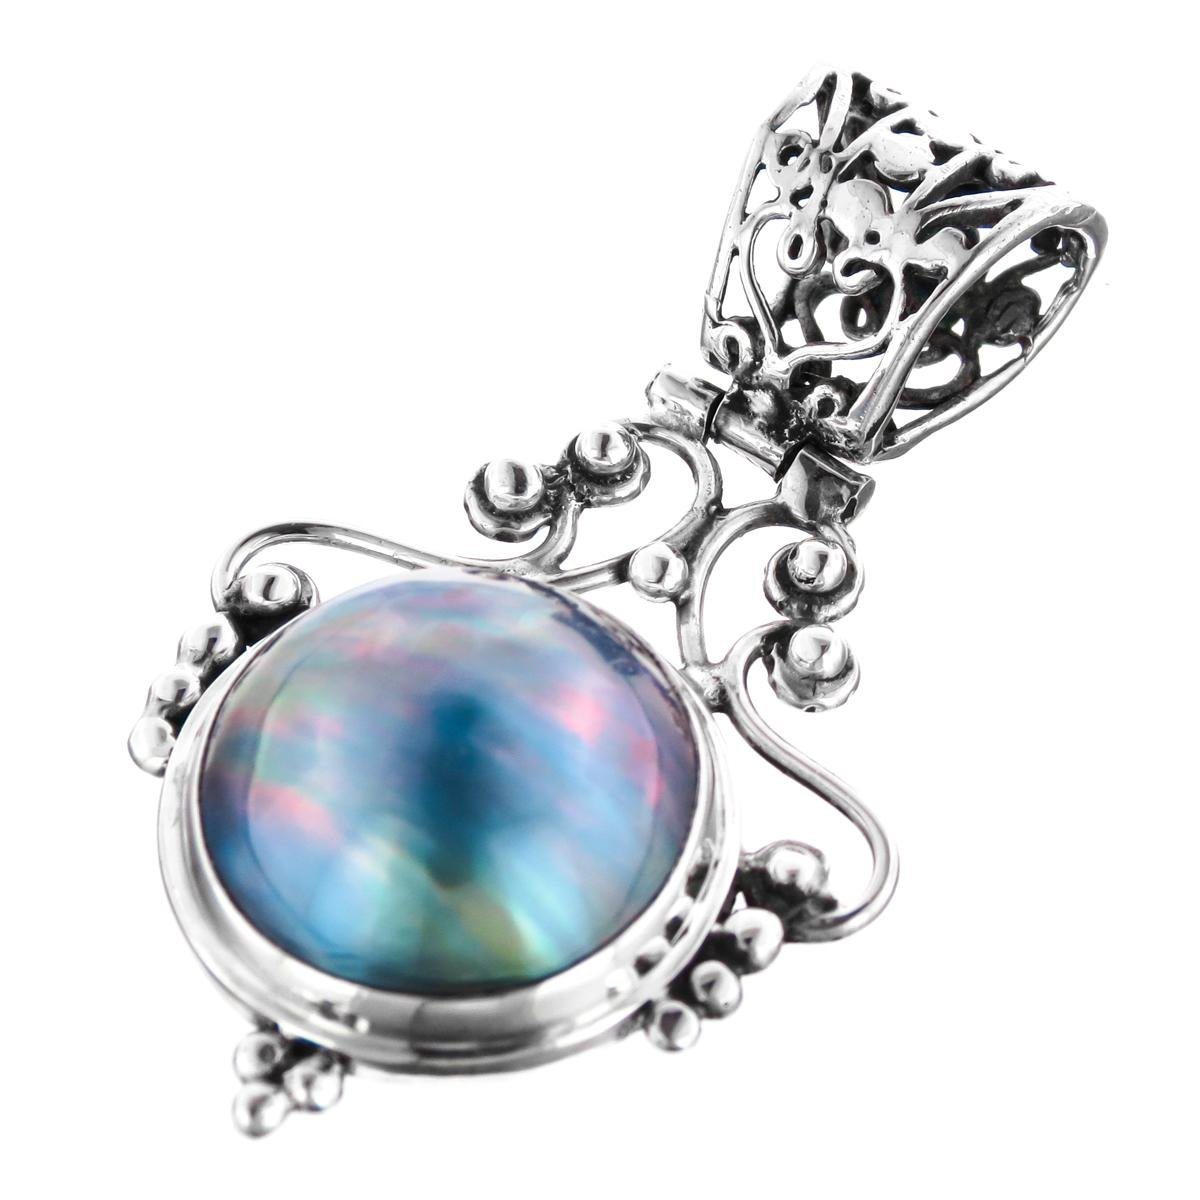 Blue Mabe Cultured Pearl 925 Sterling Silver Pendant 1 9//16